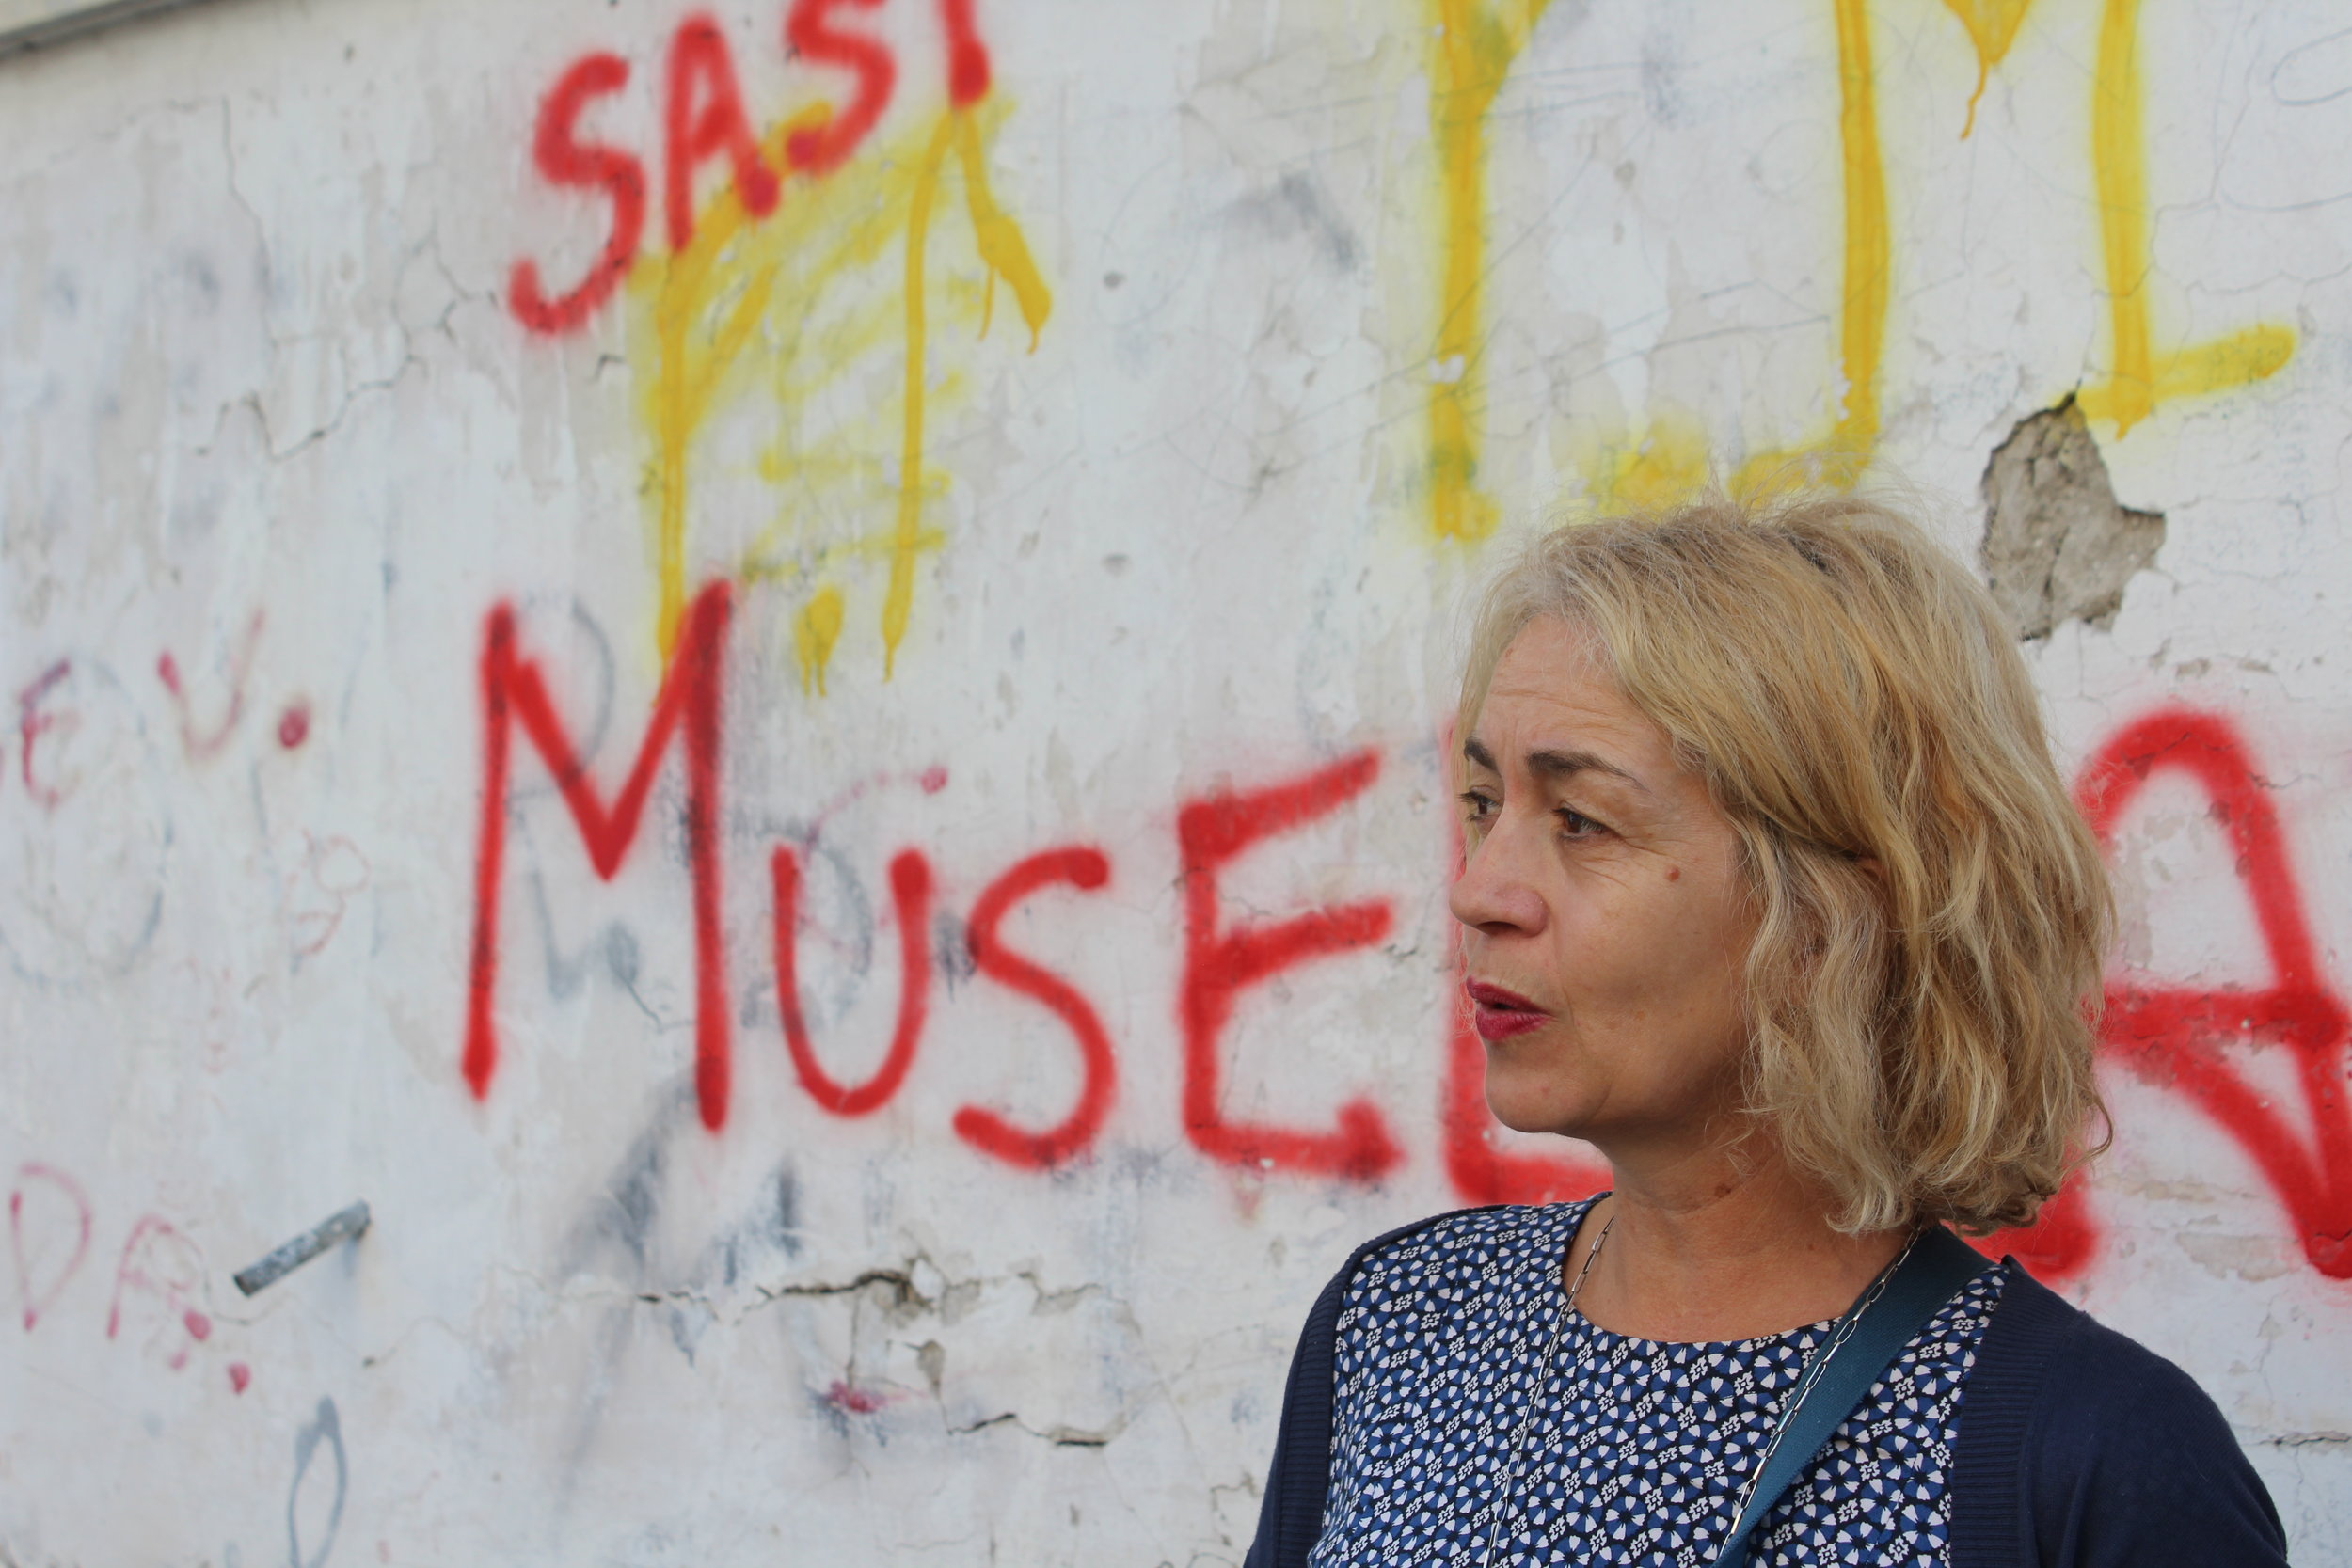 Guide Francesca Sinaschalchi discusses contemporary life in Naples's Rione Luzzatti